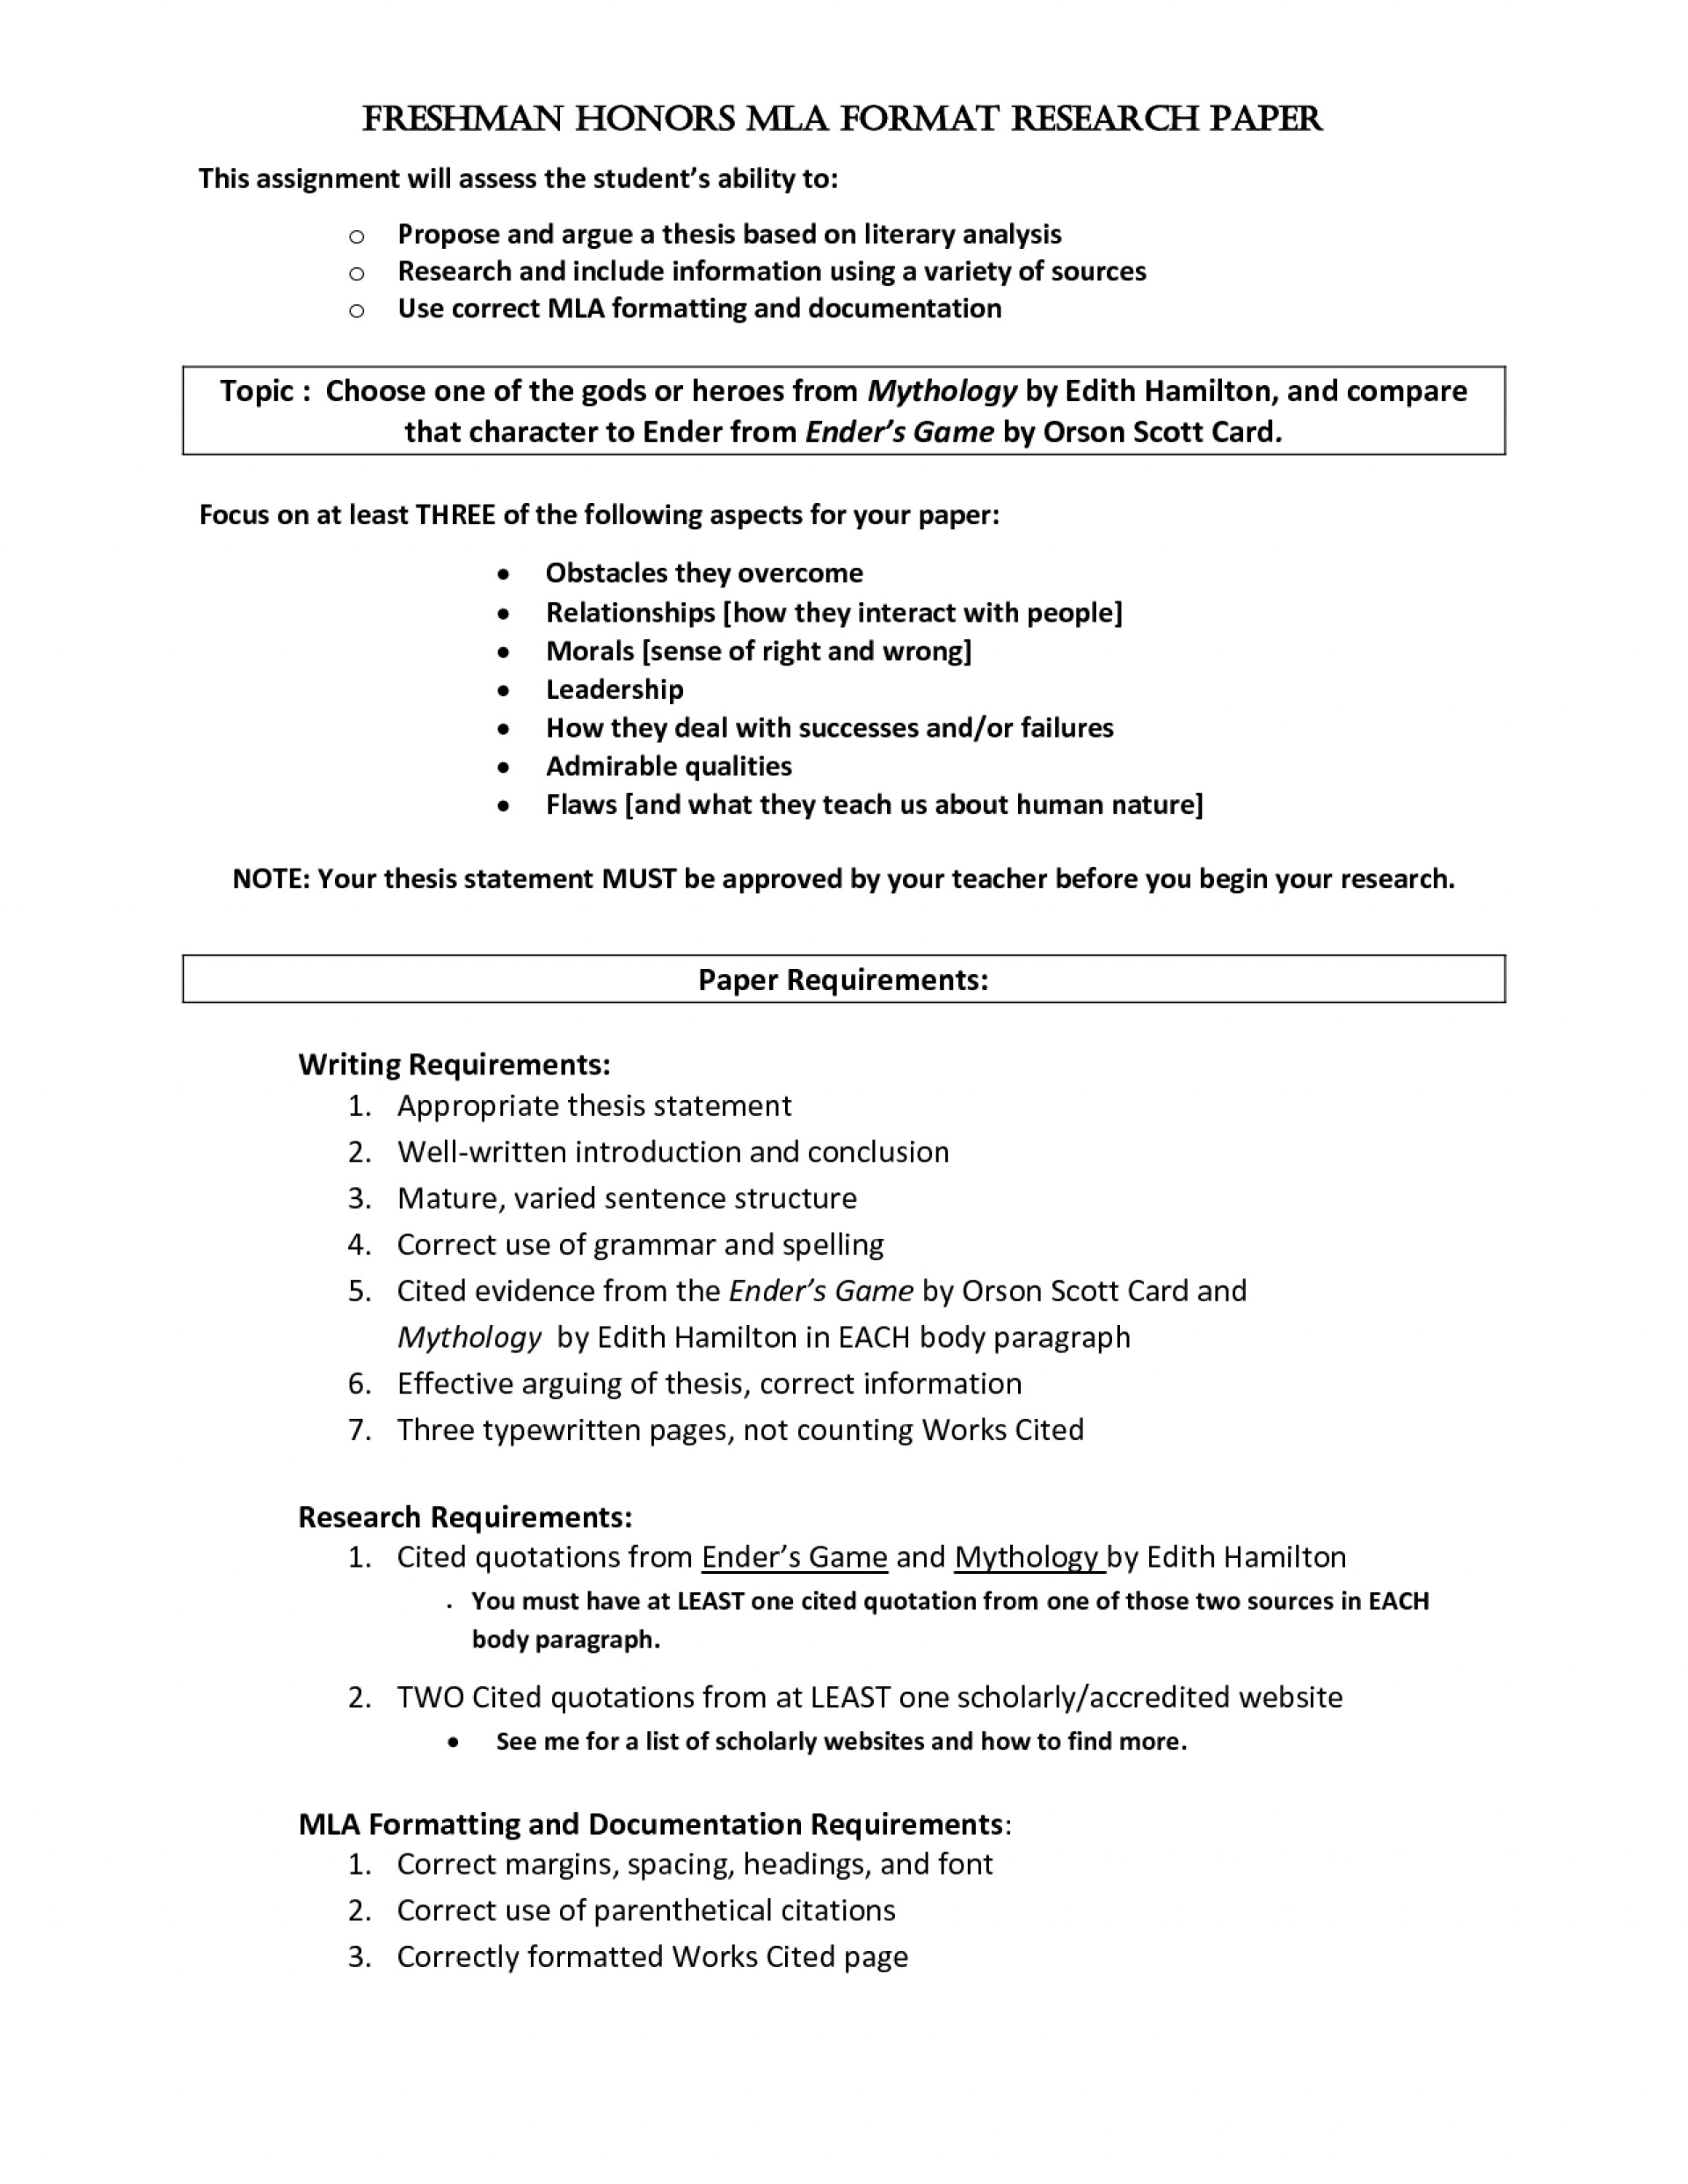 format for research paper proposal how to write in apa